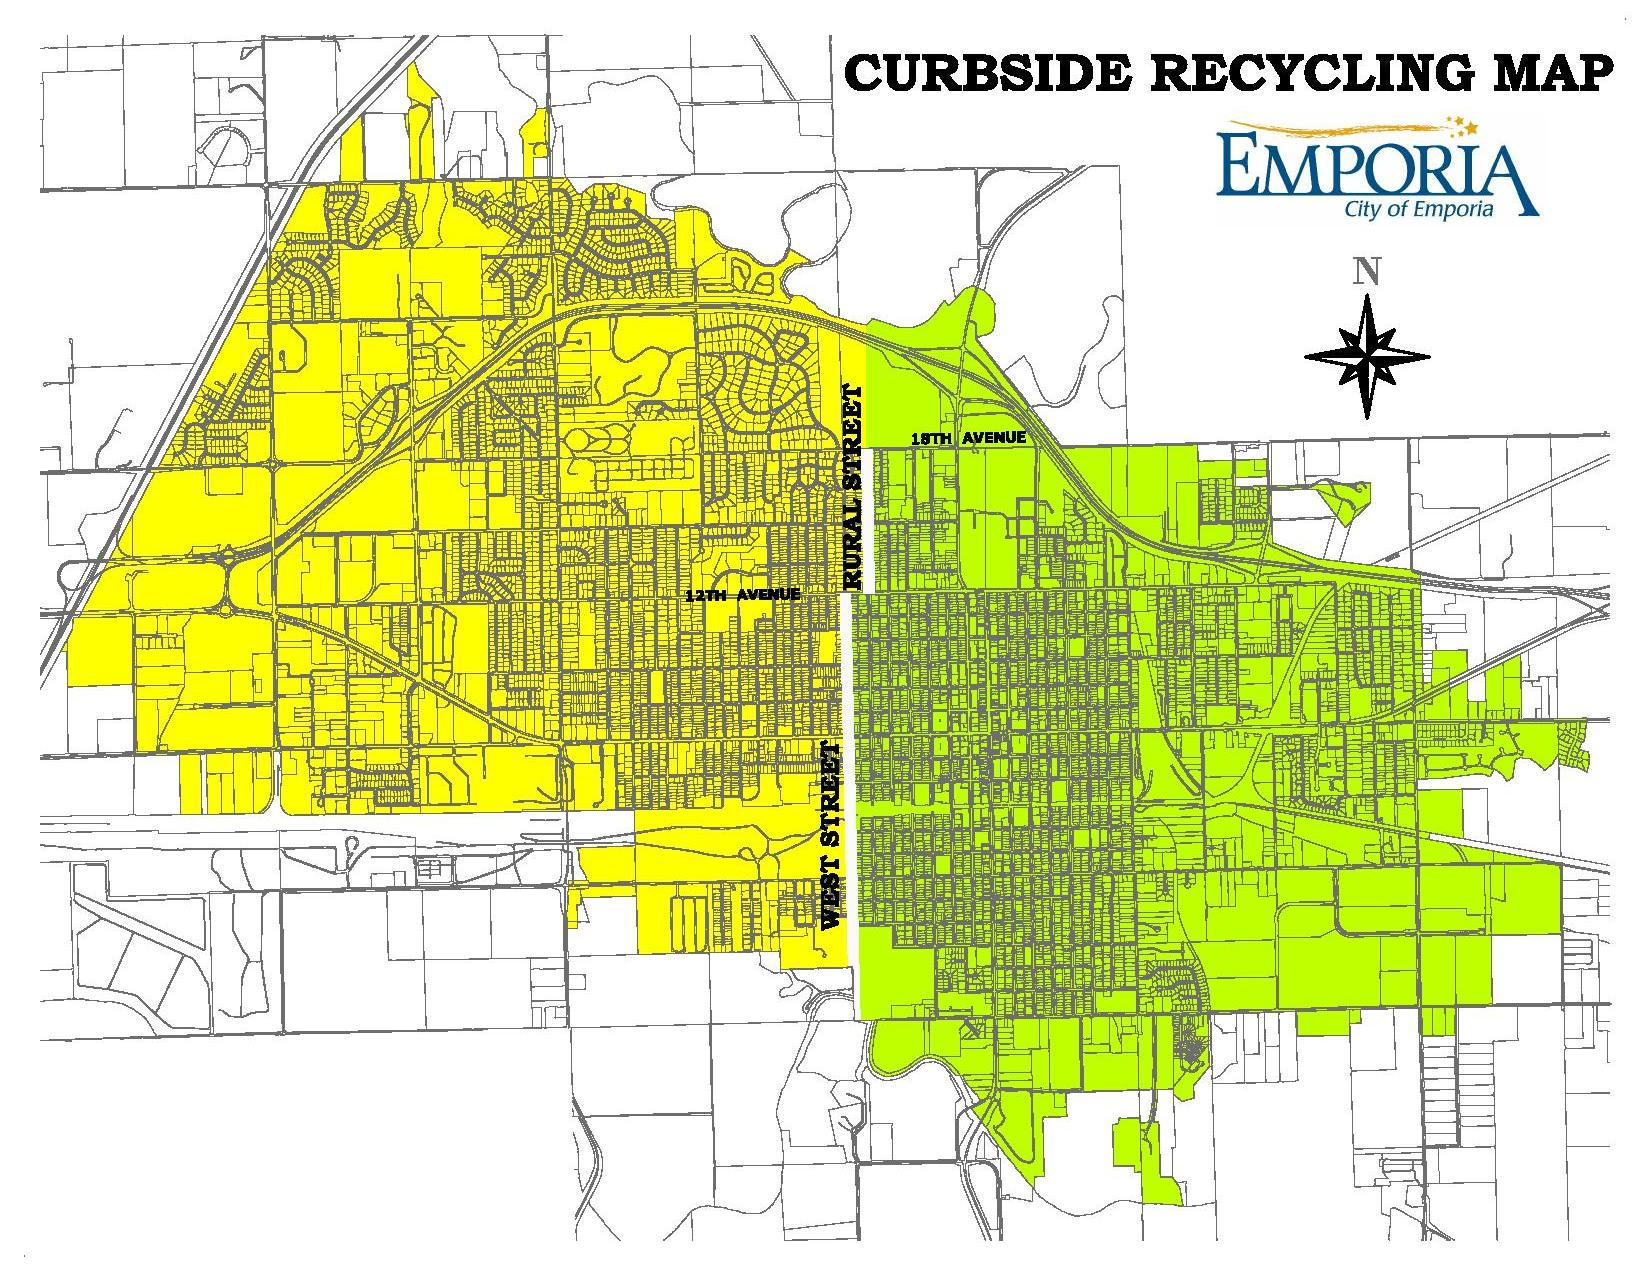 Curbside Recycling Map